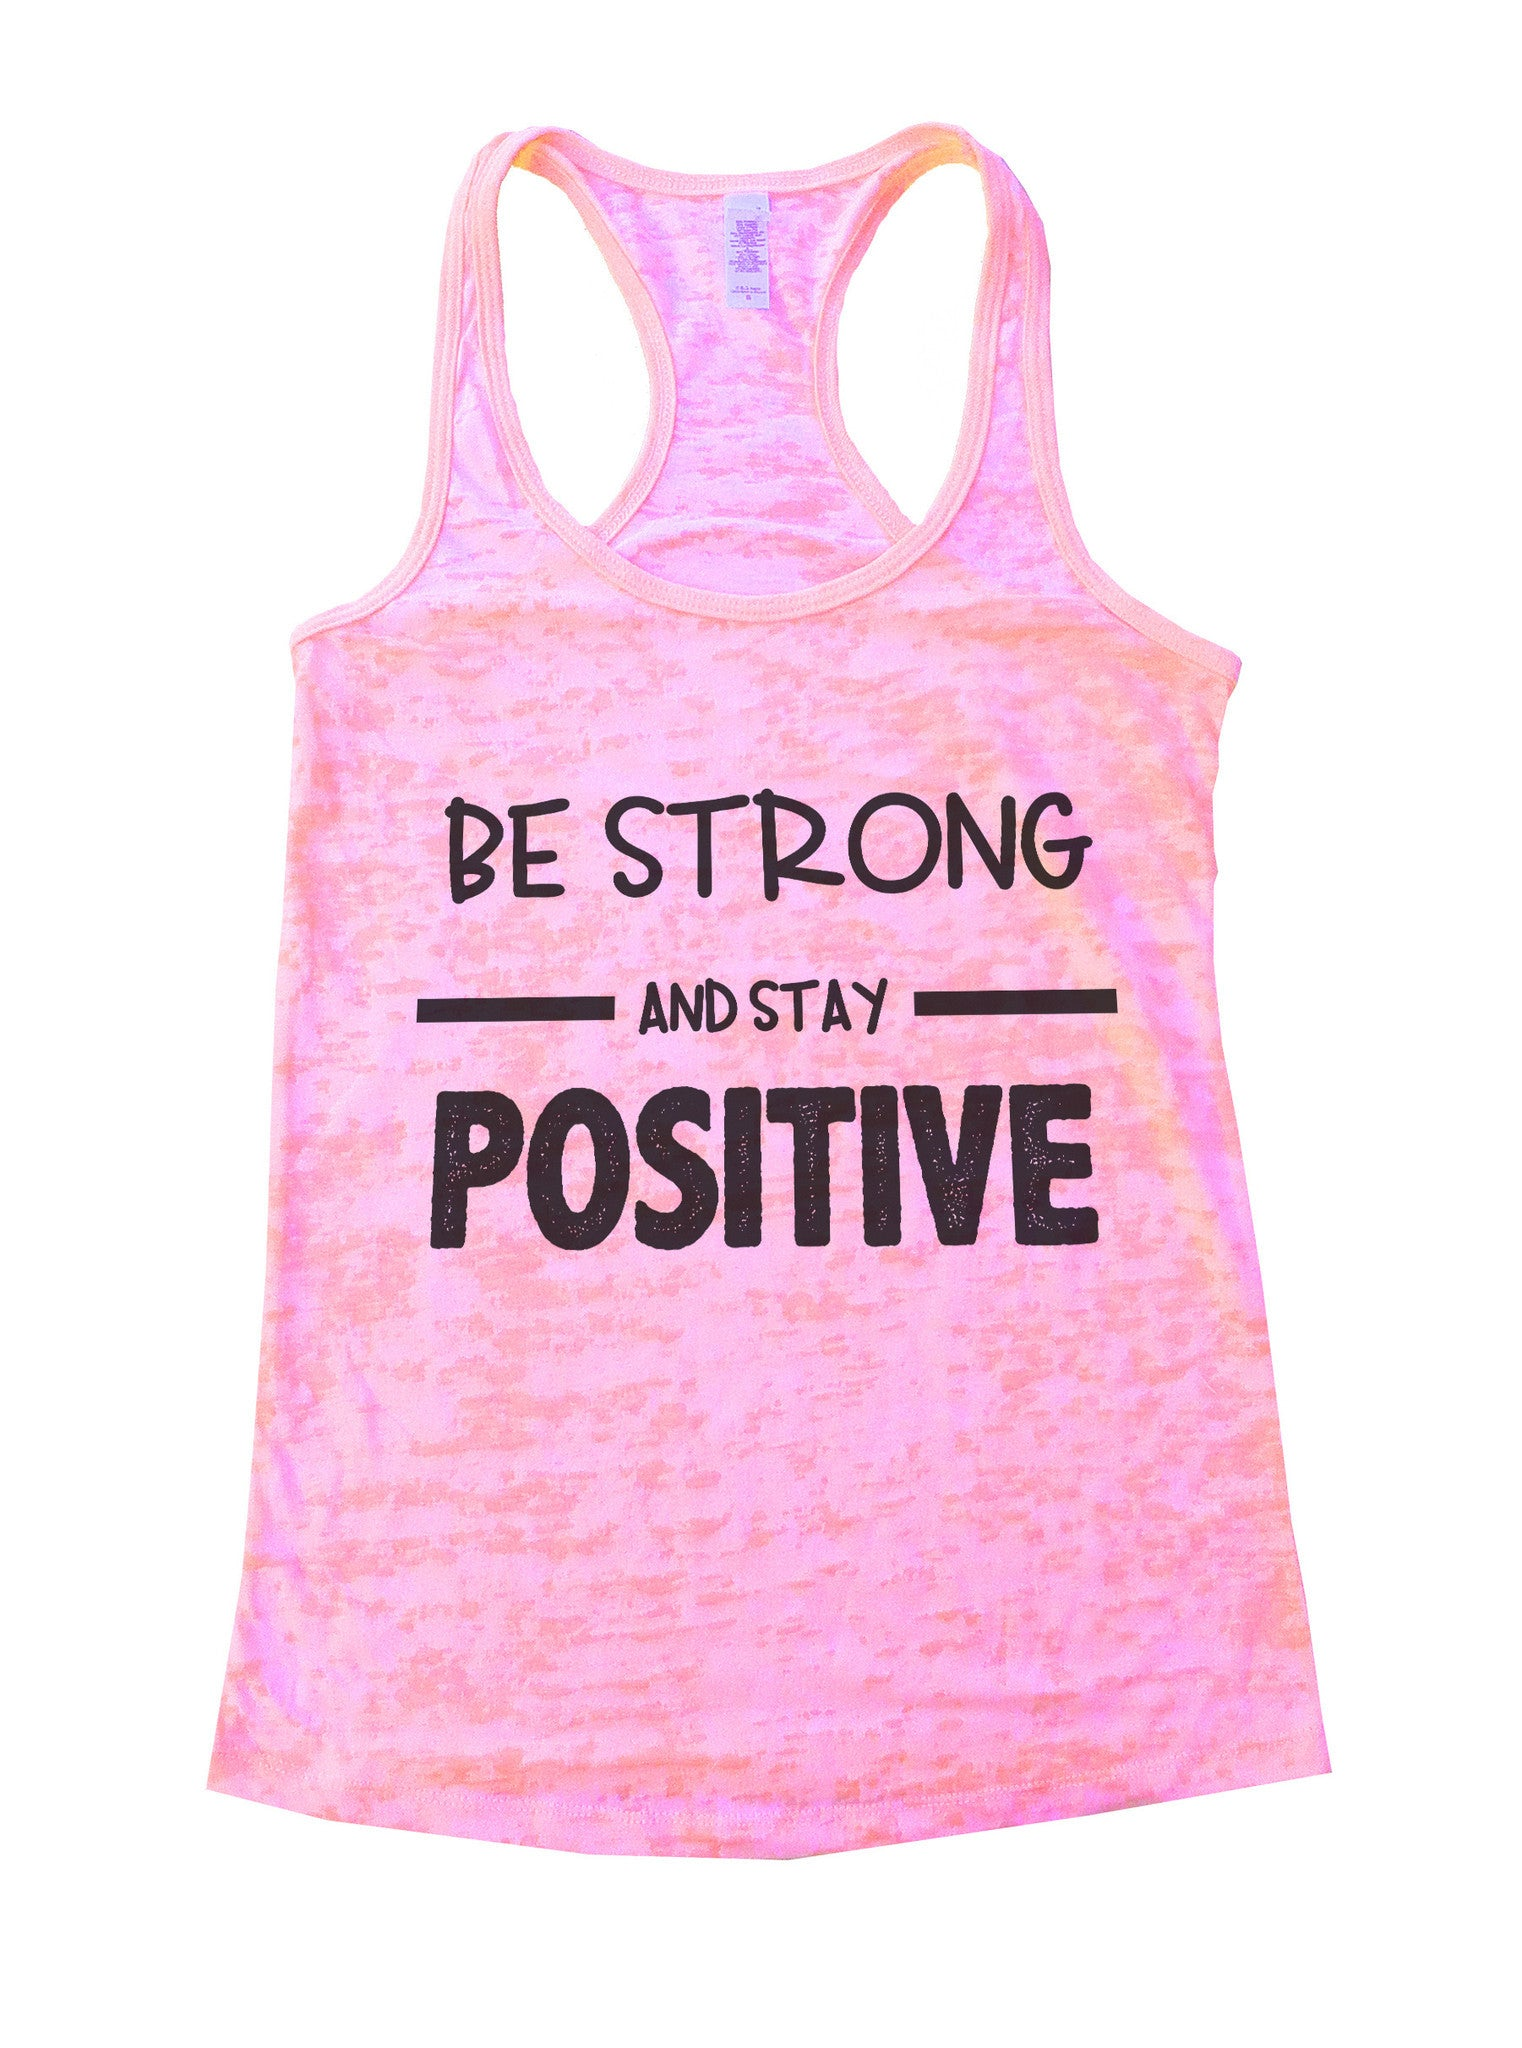 Be Strong And Stay Positive Womens Burnout Tank Top By BurnoutTankTops.com - 657 - Funny Shirts Tank Tops Burnouts and Triblends  - 1